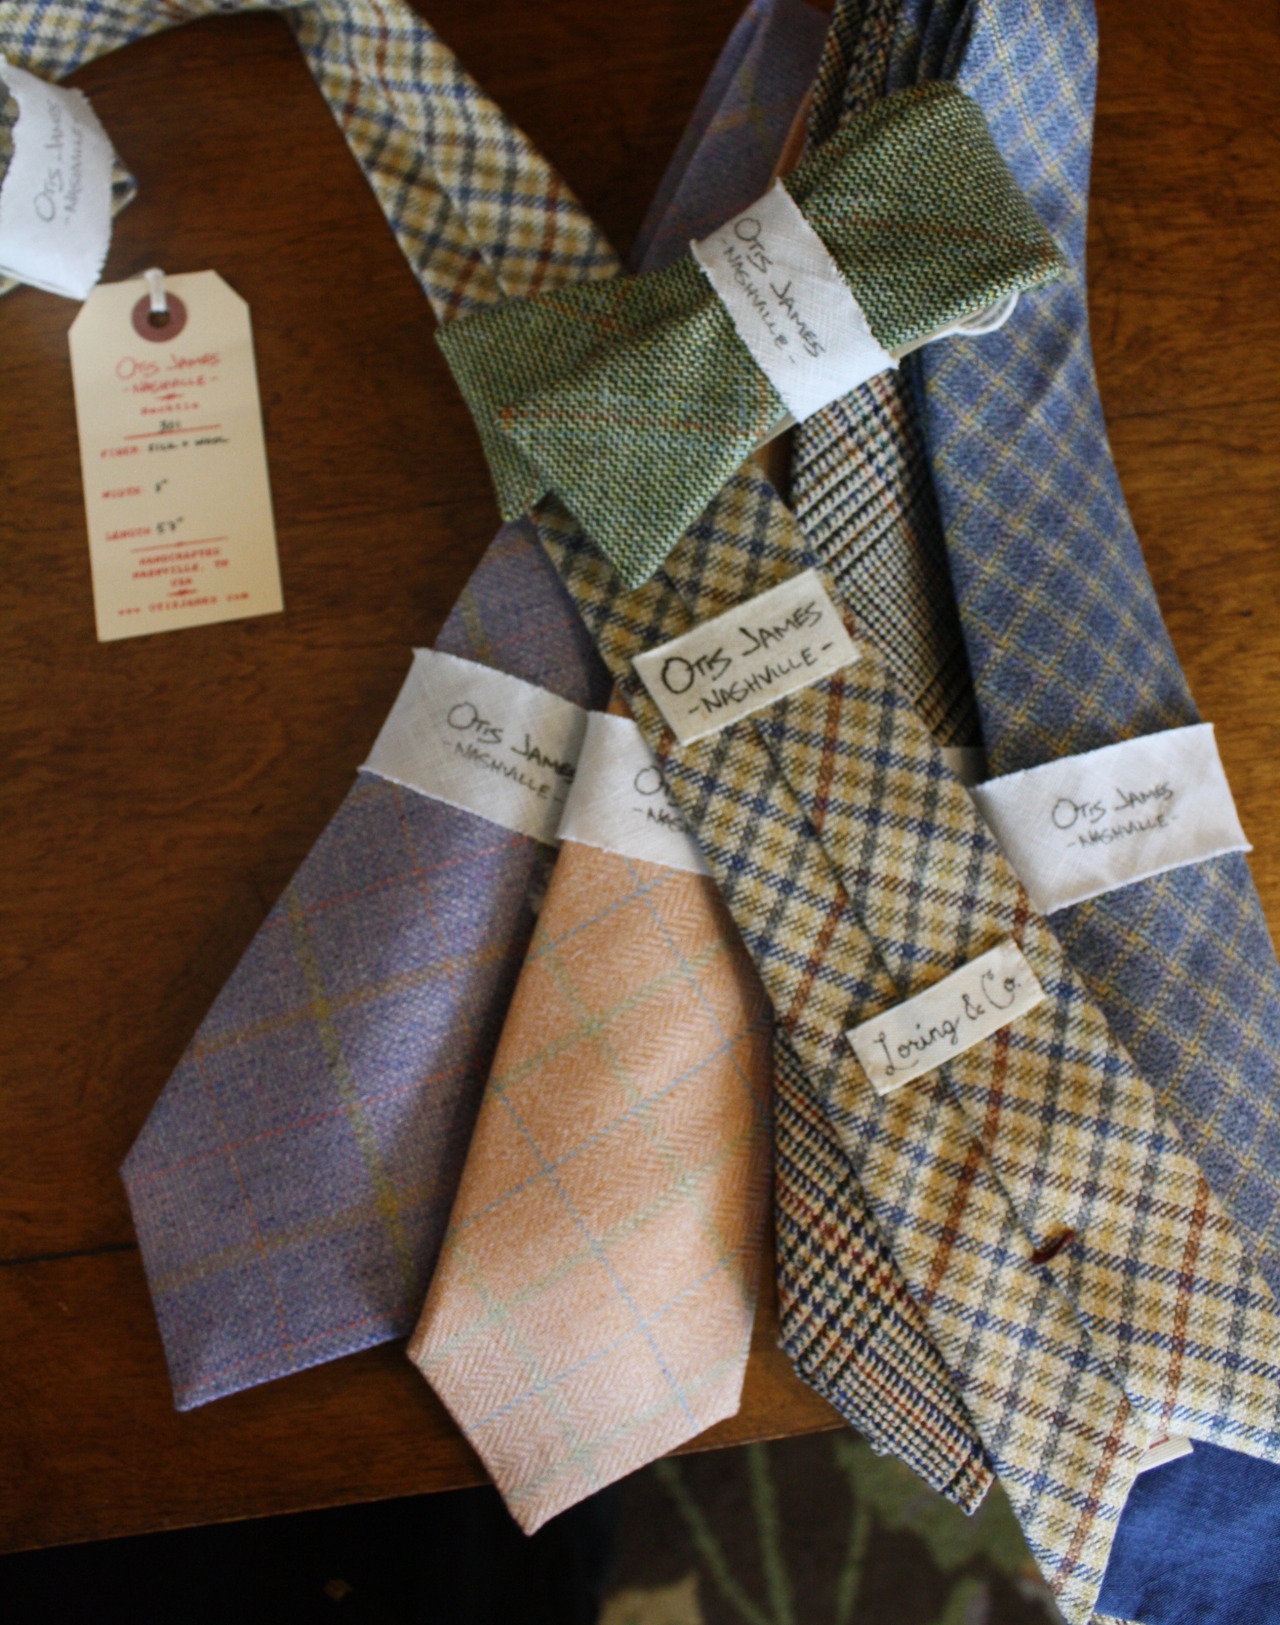 otis james ties and bowties